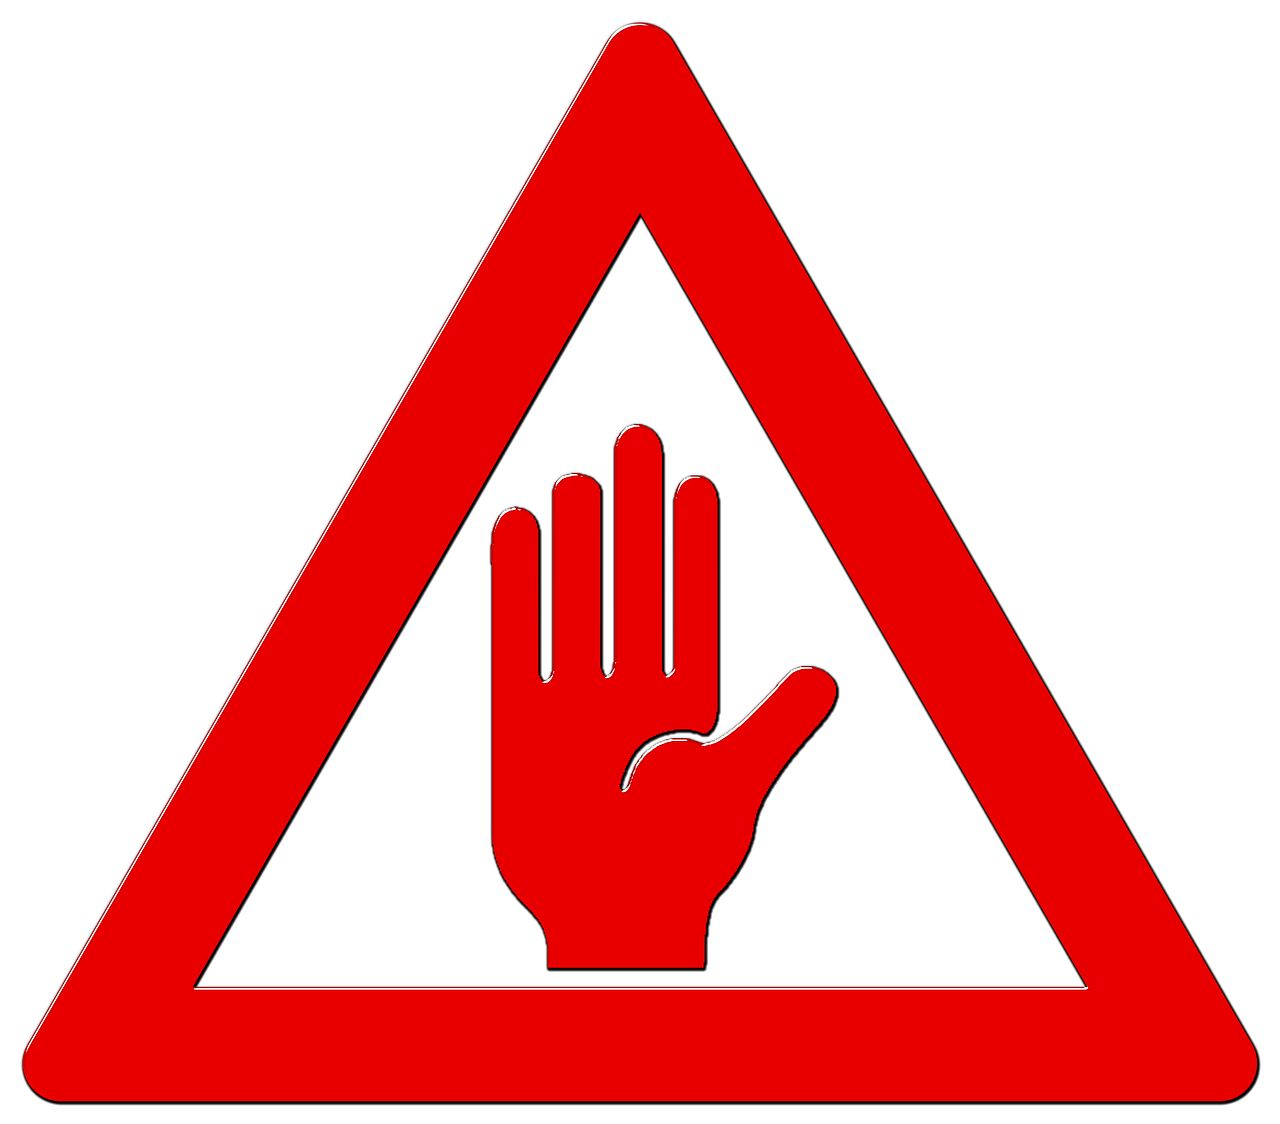 Warning clipart symptom. Msd signs and symptoms